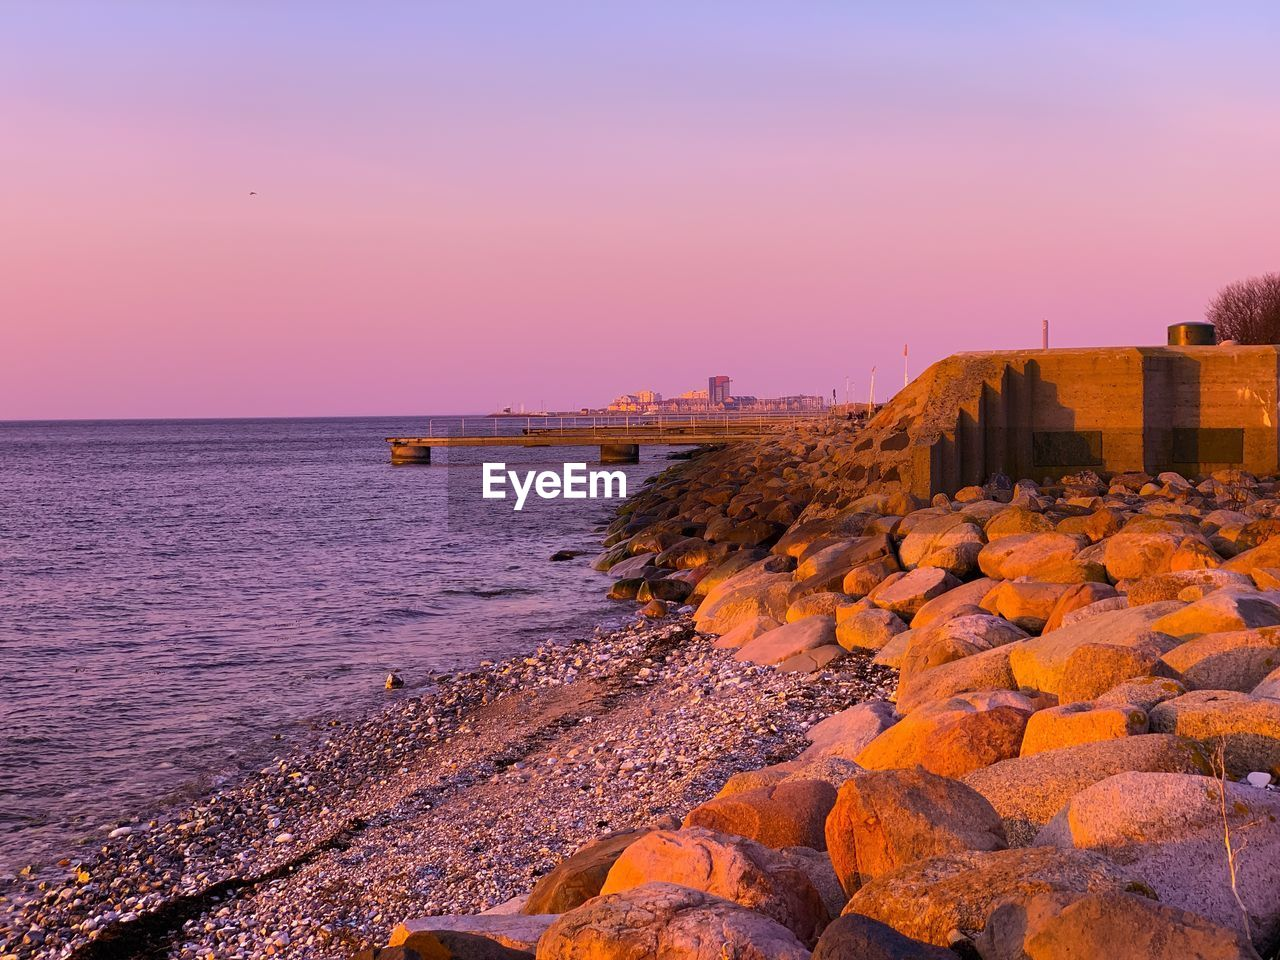 sky, water, sea, sunset, orange color, beauty in nature, nature, built structure, scenics - nature, architecture, rock, clear sky, solid, beach, no people, building exterior, rock - object, tranquility, tranquil scene, horizon over water, outdoors, groyne